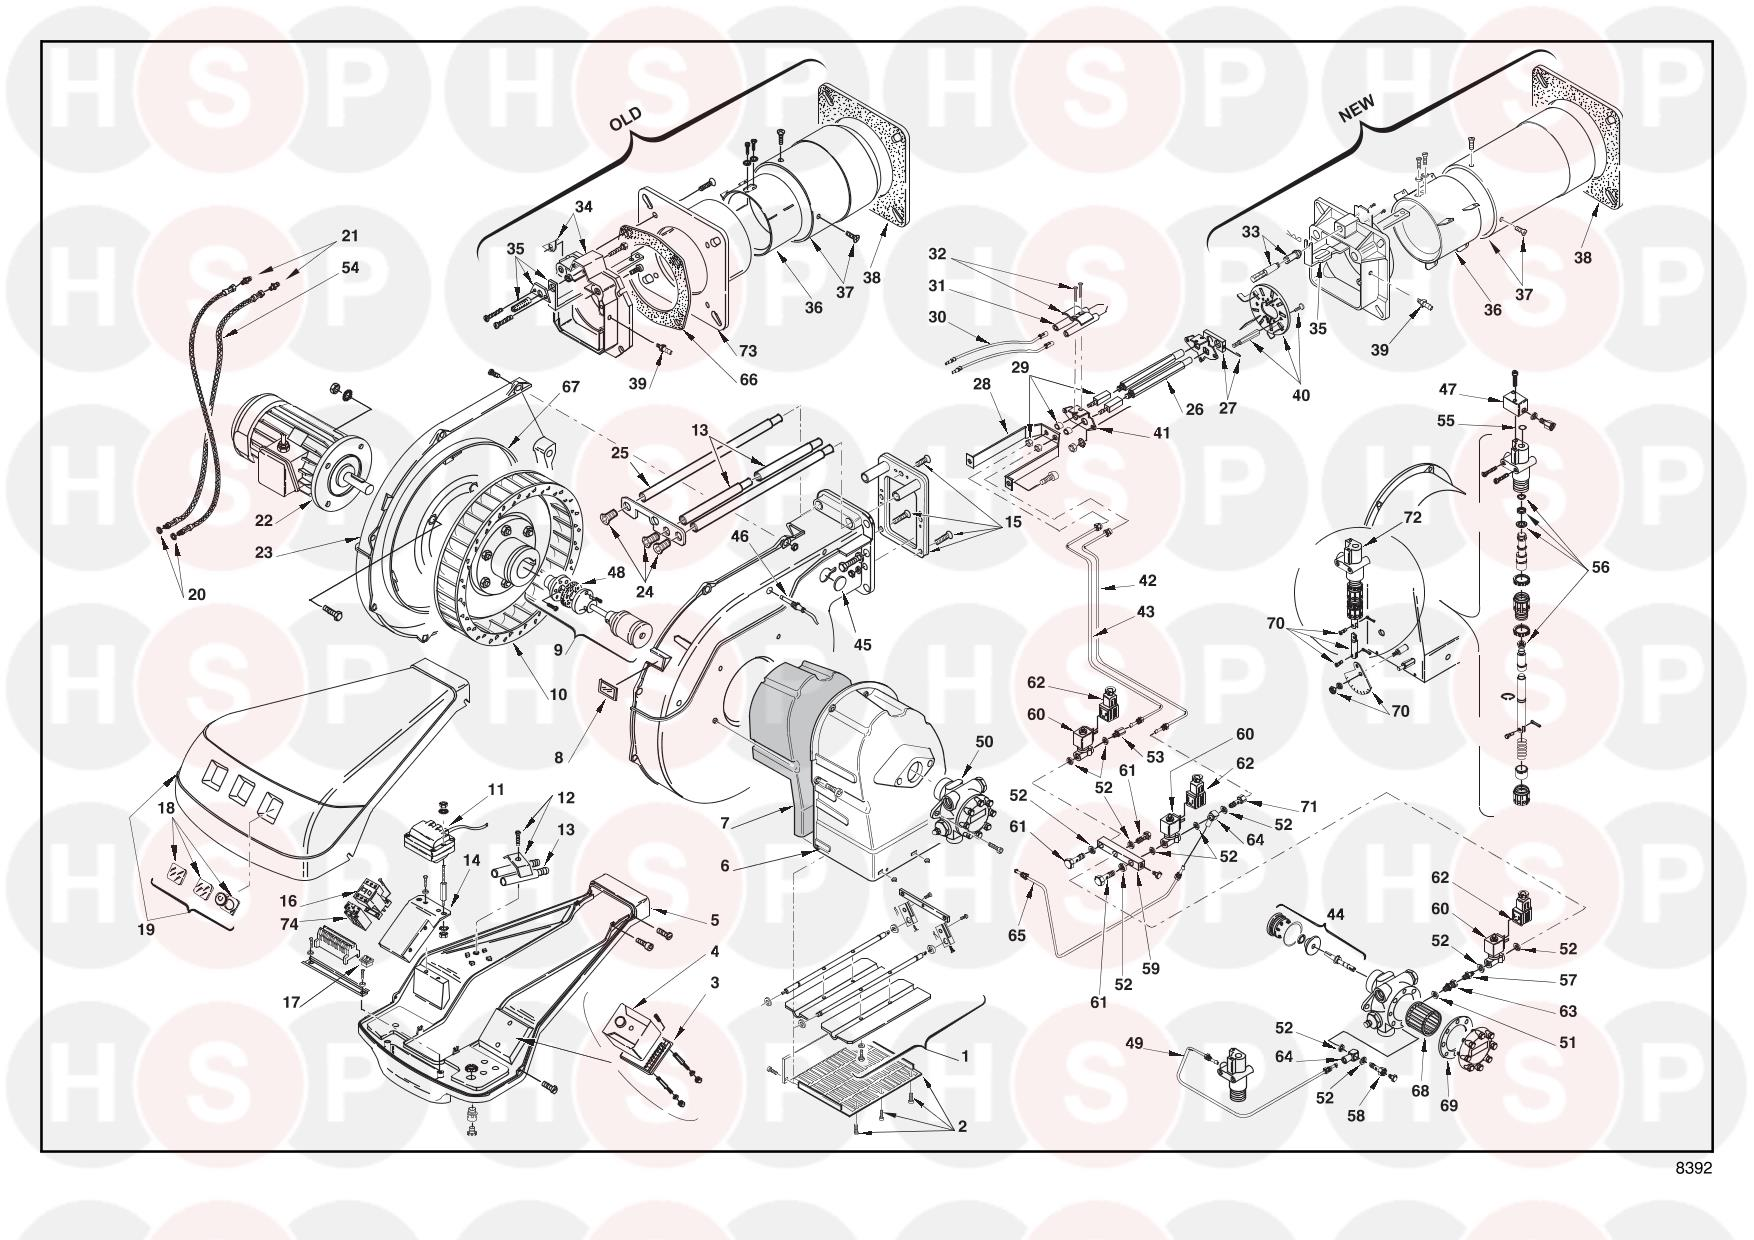 Riello RL 190 20011006 (TYPE 673 T1) (BURNER EXPLODED VIEW